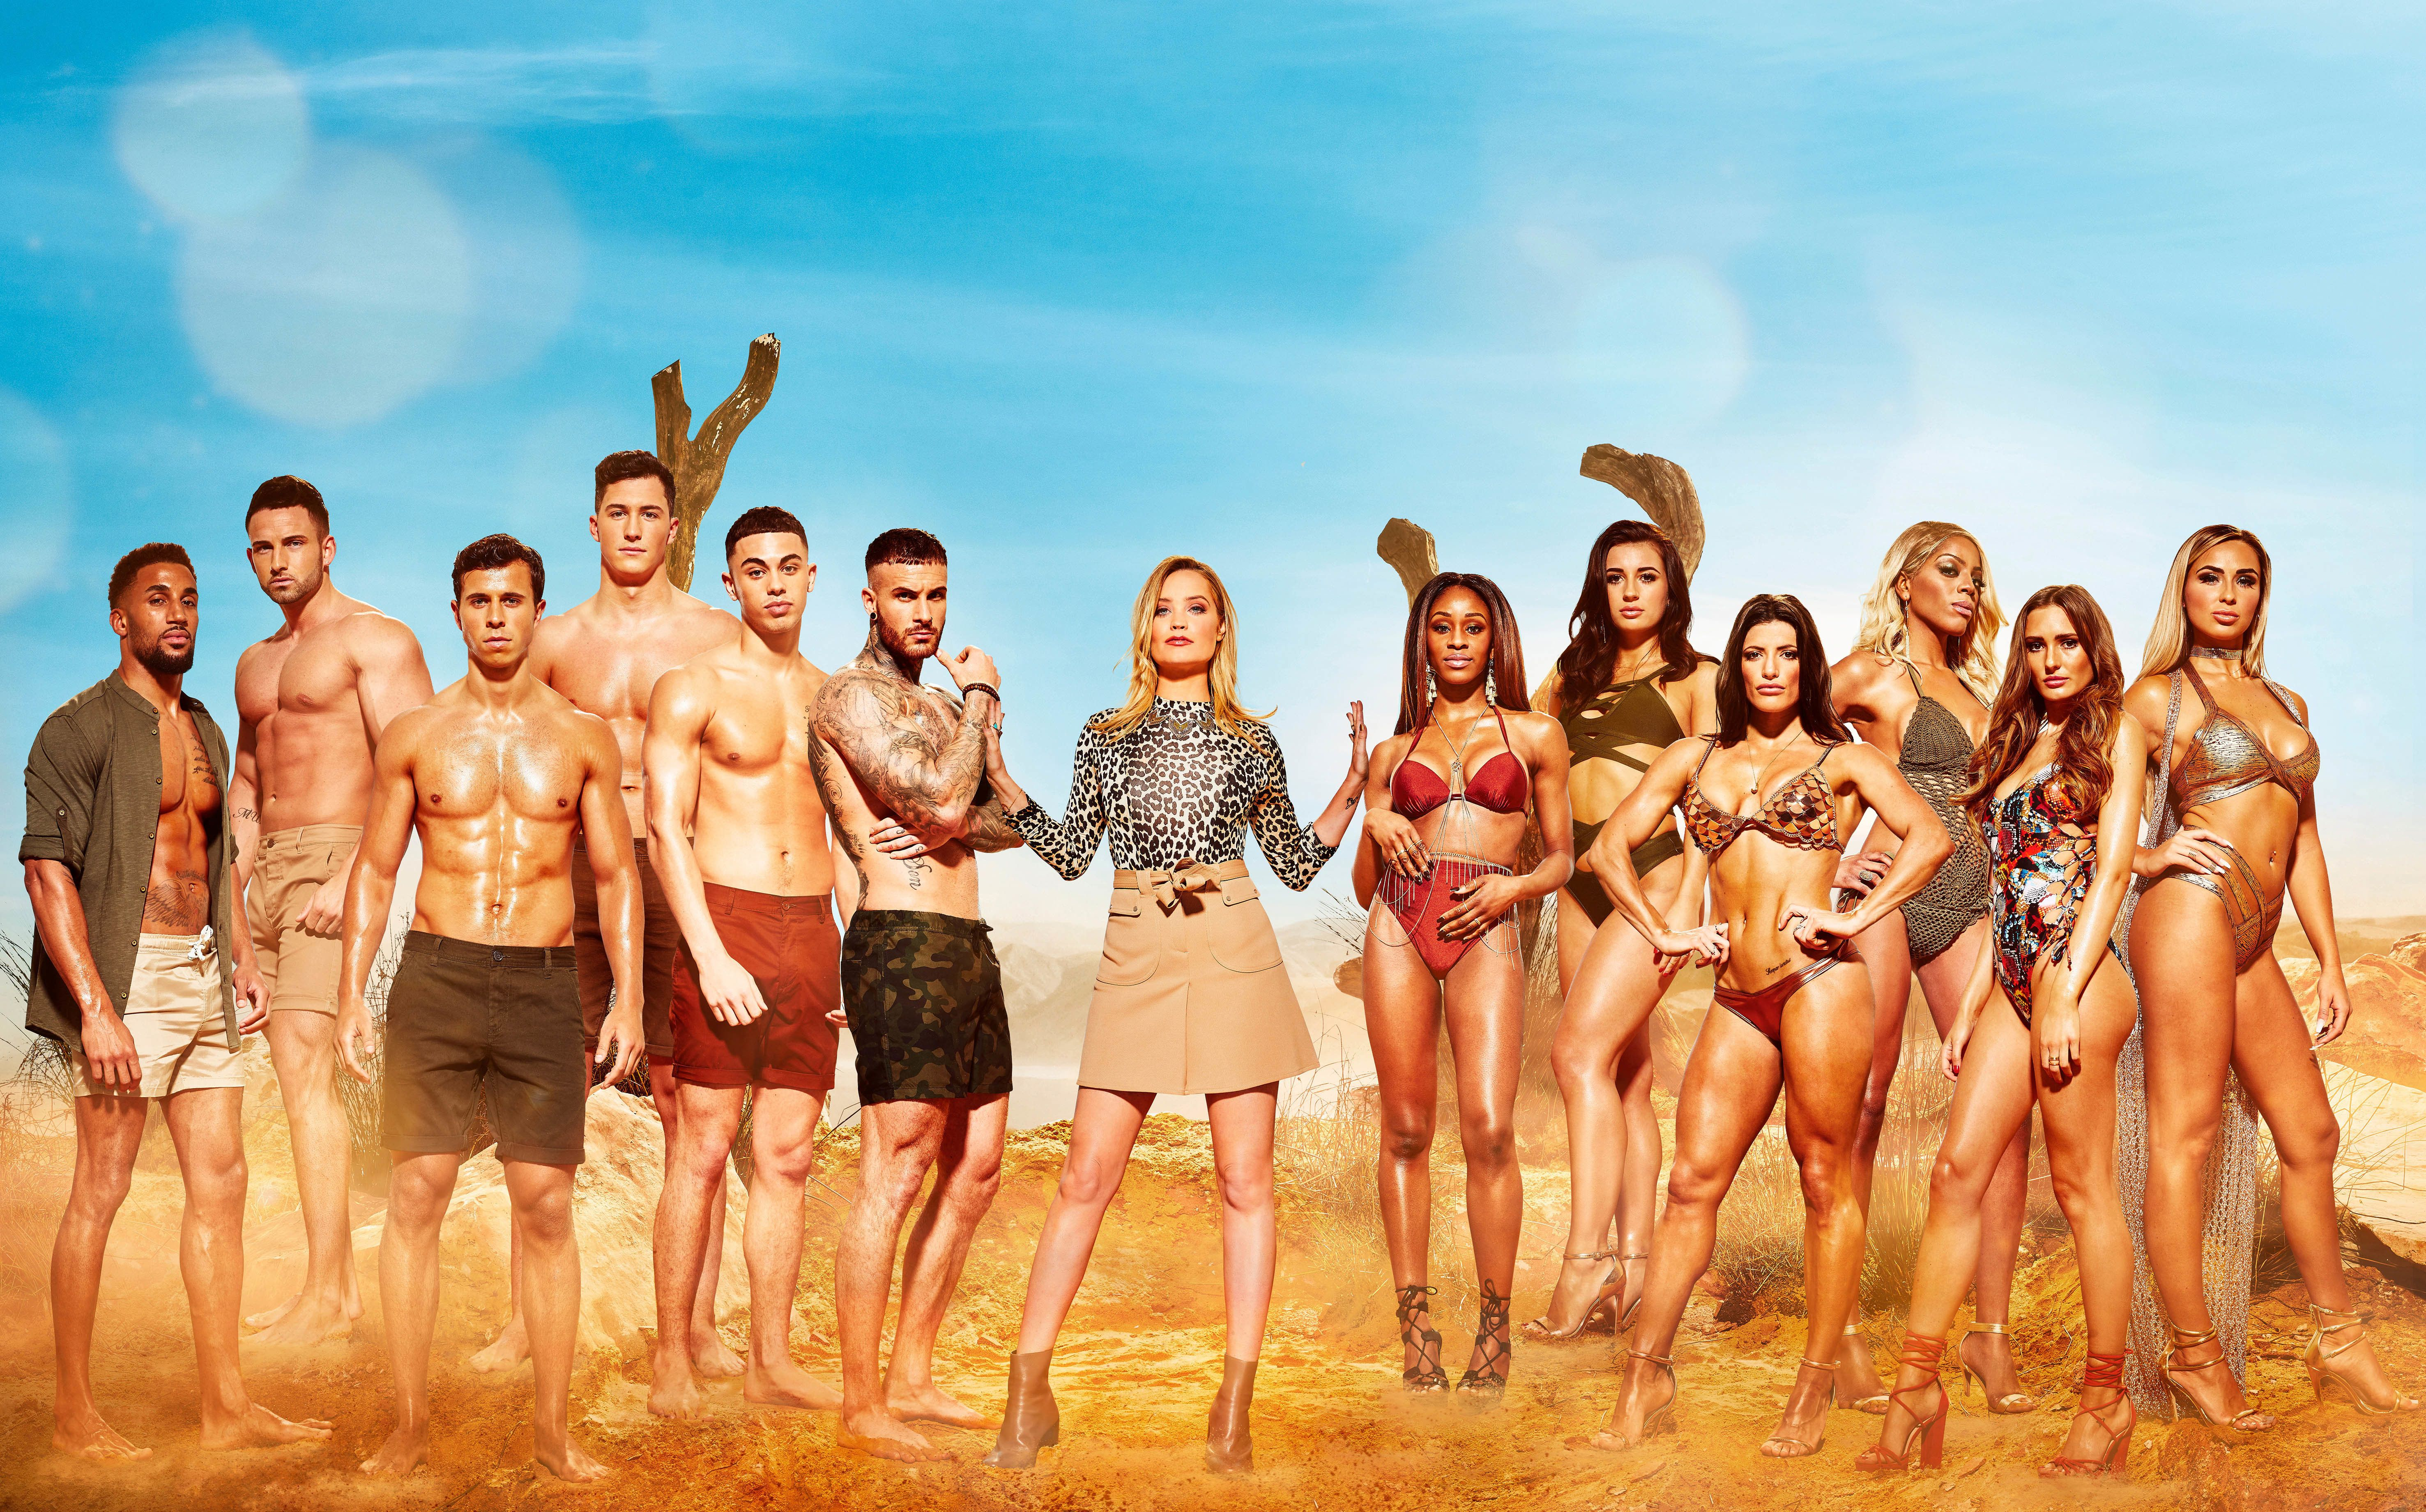 'Survival Of The Fittest' Immediately Draws 'BTEC Love Island' Comparisons Upon Its